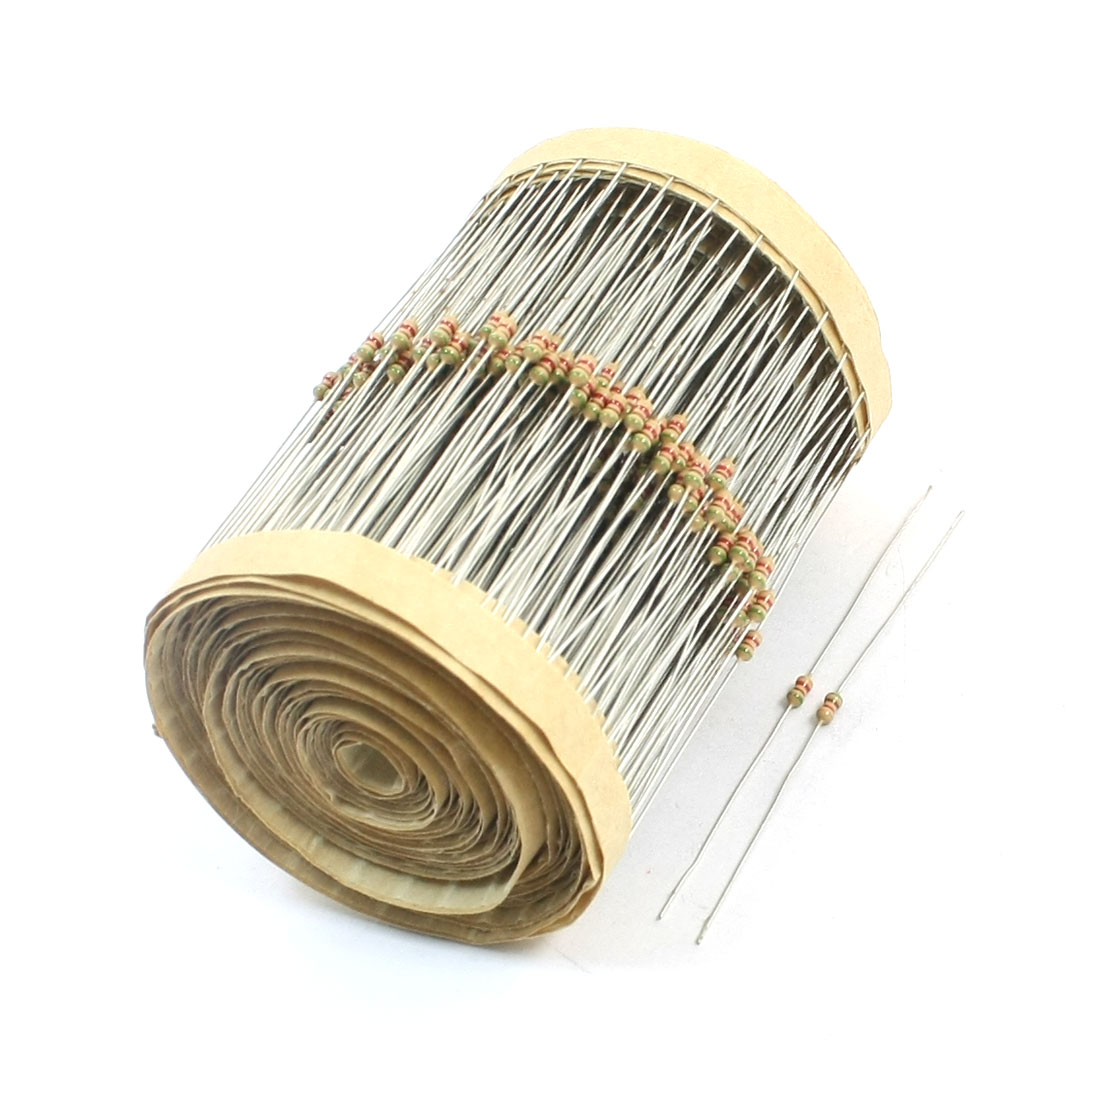 600 Pcs 1/8W 5.1K Ohm 5% Tolerance Axial Lead Through Hole PCB Surface Mount Carbon Film Fixed Resistors